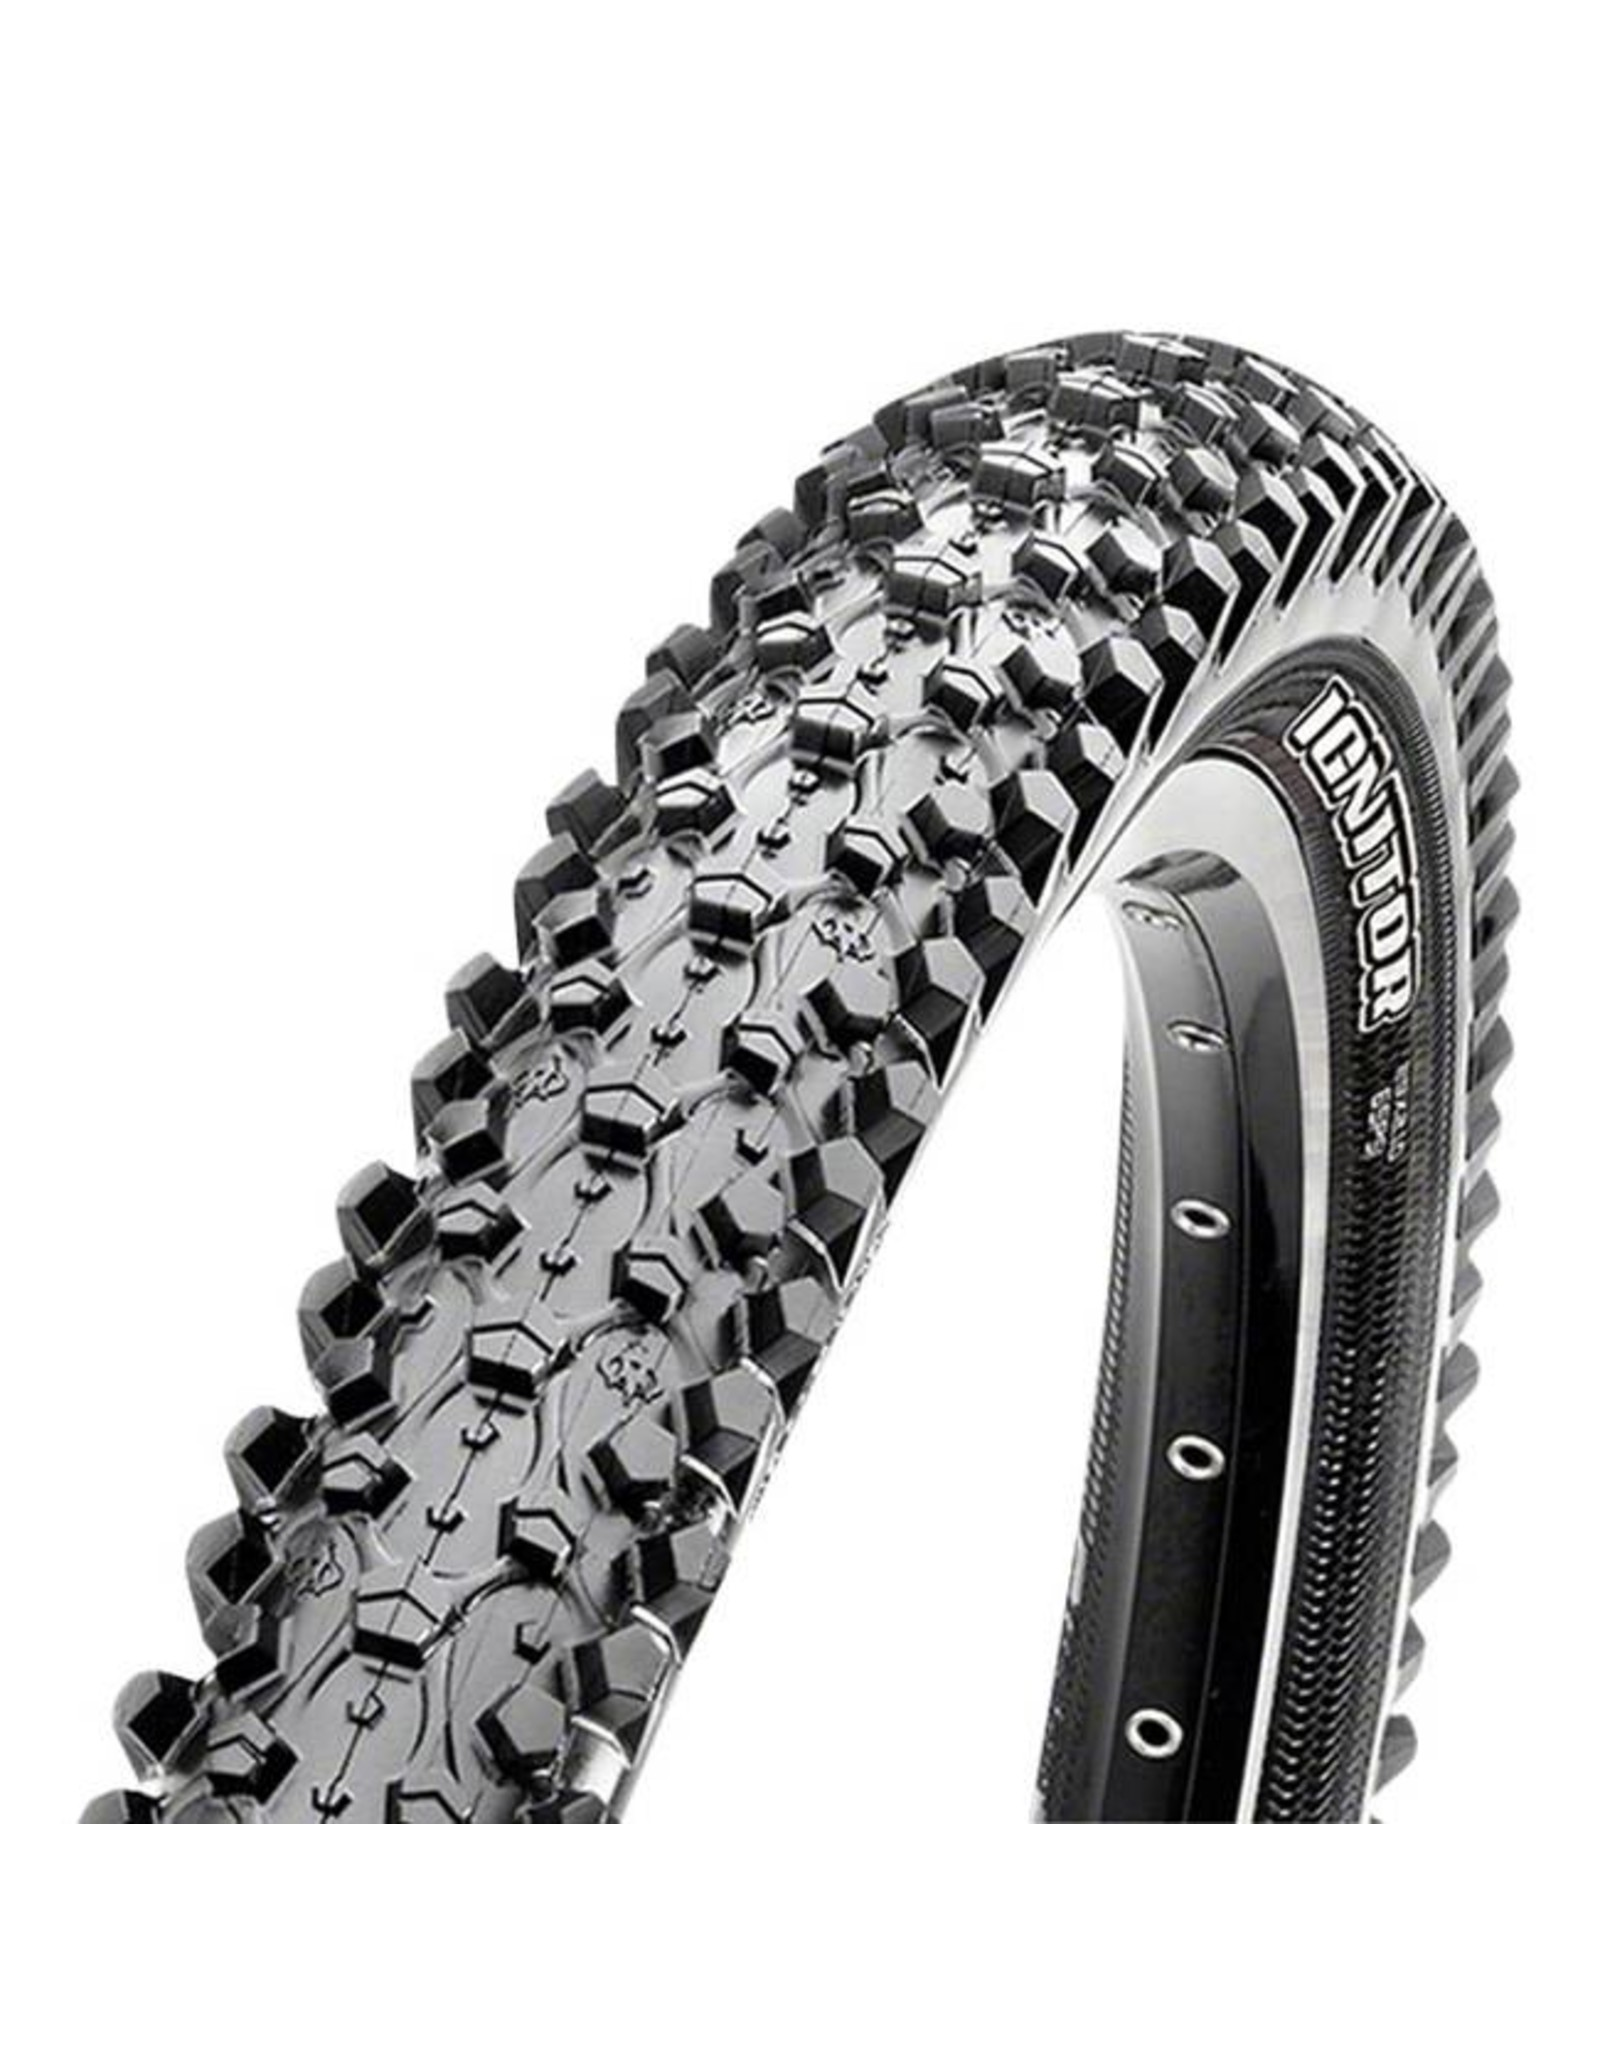 "Maxxis Maxxis Ignitor Tire: 29 x 2.35"", Folding, 60tpi, Single Compound, EXO, Tubeless Ready, Black"